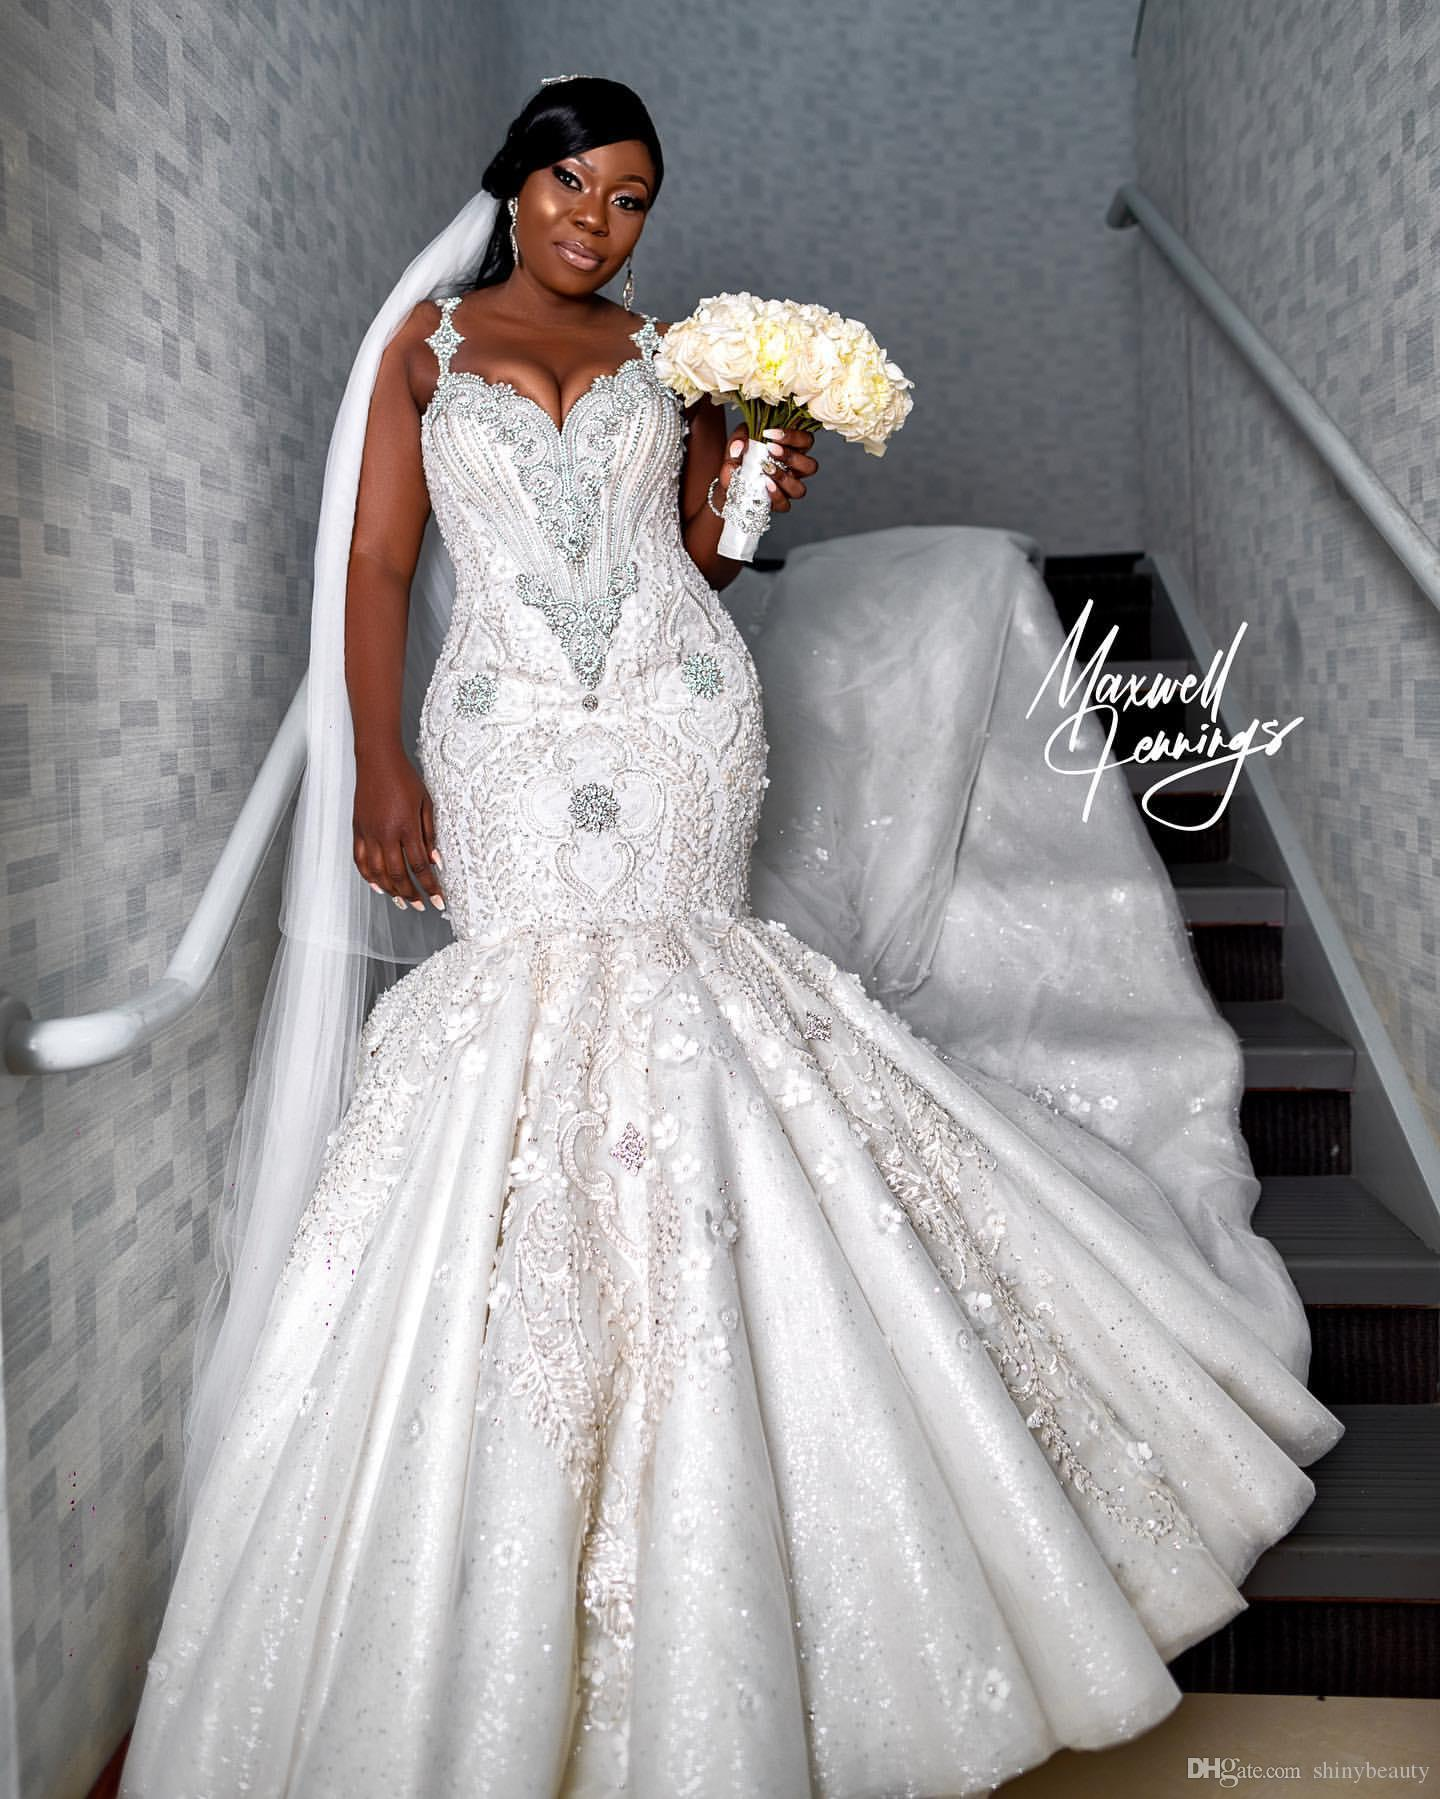 2019 Arabic Plus Size Luxurious Lace Beaded Wedding Dresses Crystals Mermaid Sexy Bridal Dresses Vintage Wedding Gowns SY266